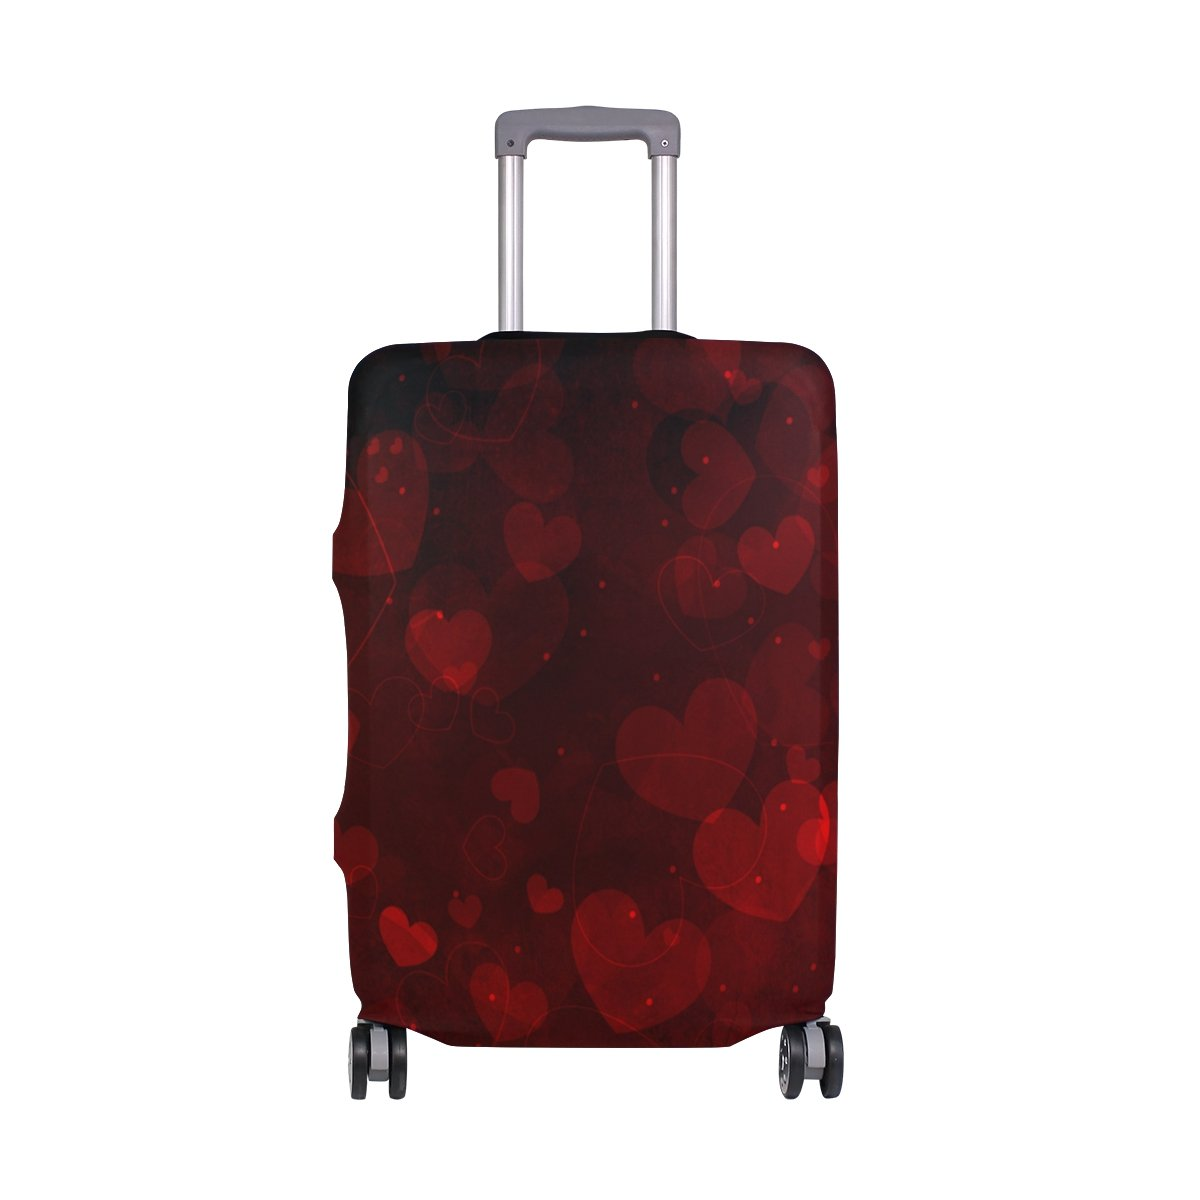 ALAZA Hearts Valentine's Day Wedding Luggage Cover Fits 30-32 Inch Suitcase Spandex Travel Protector XL